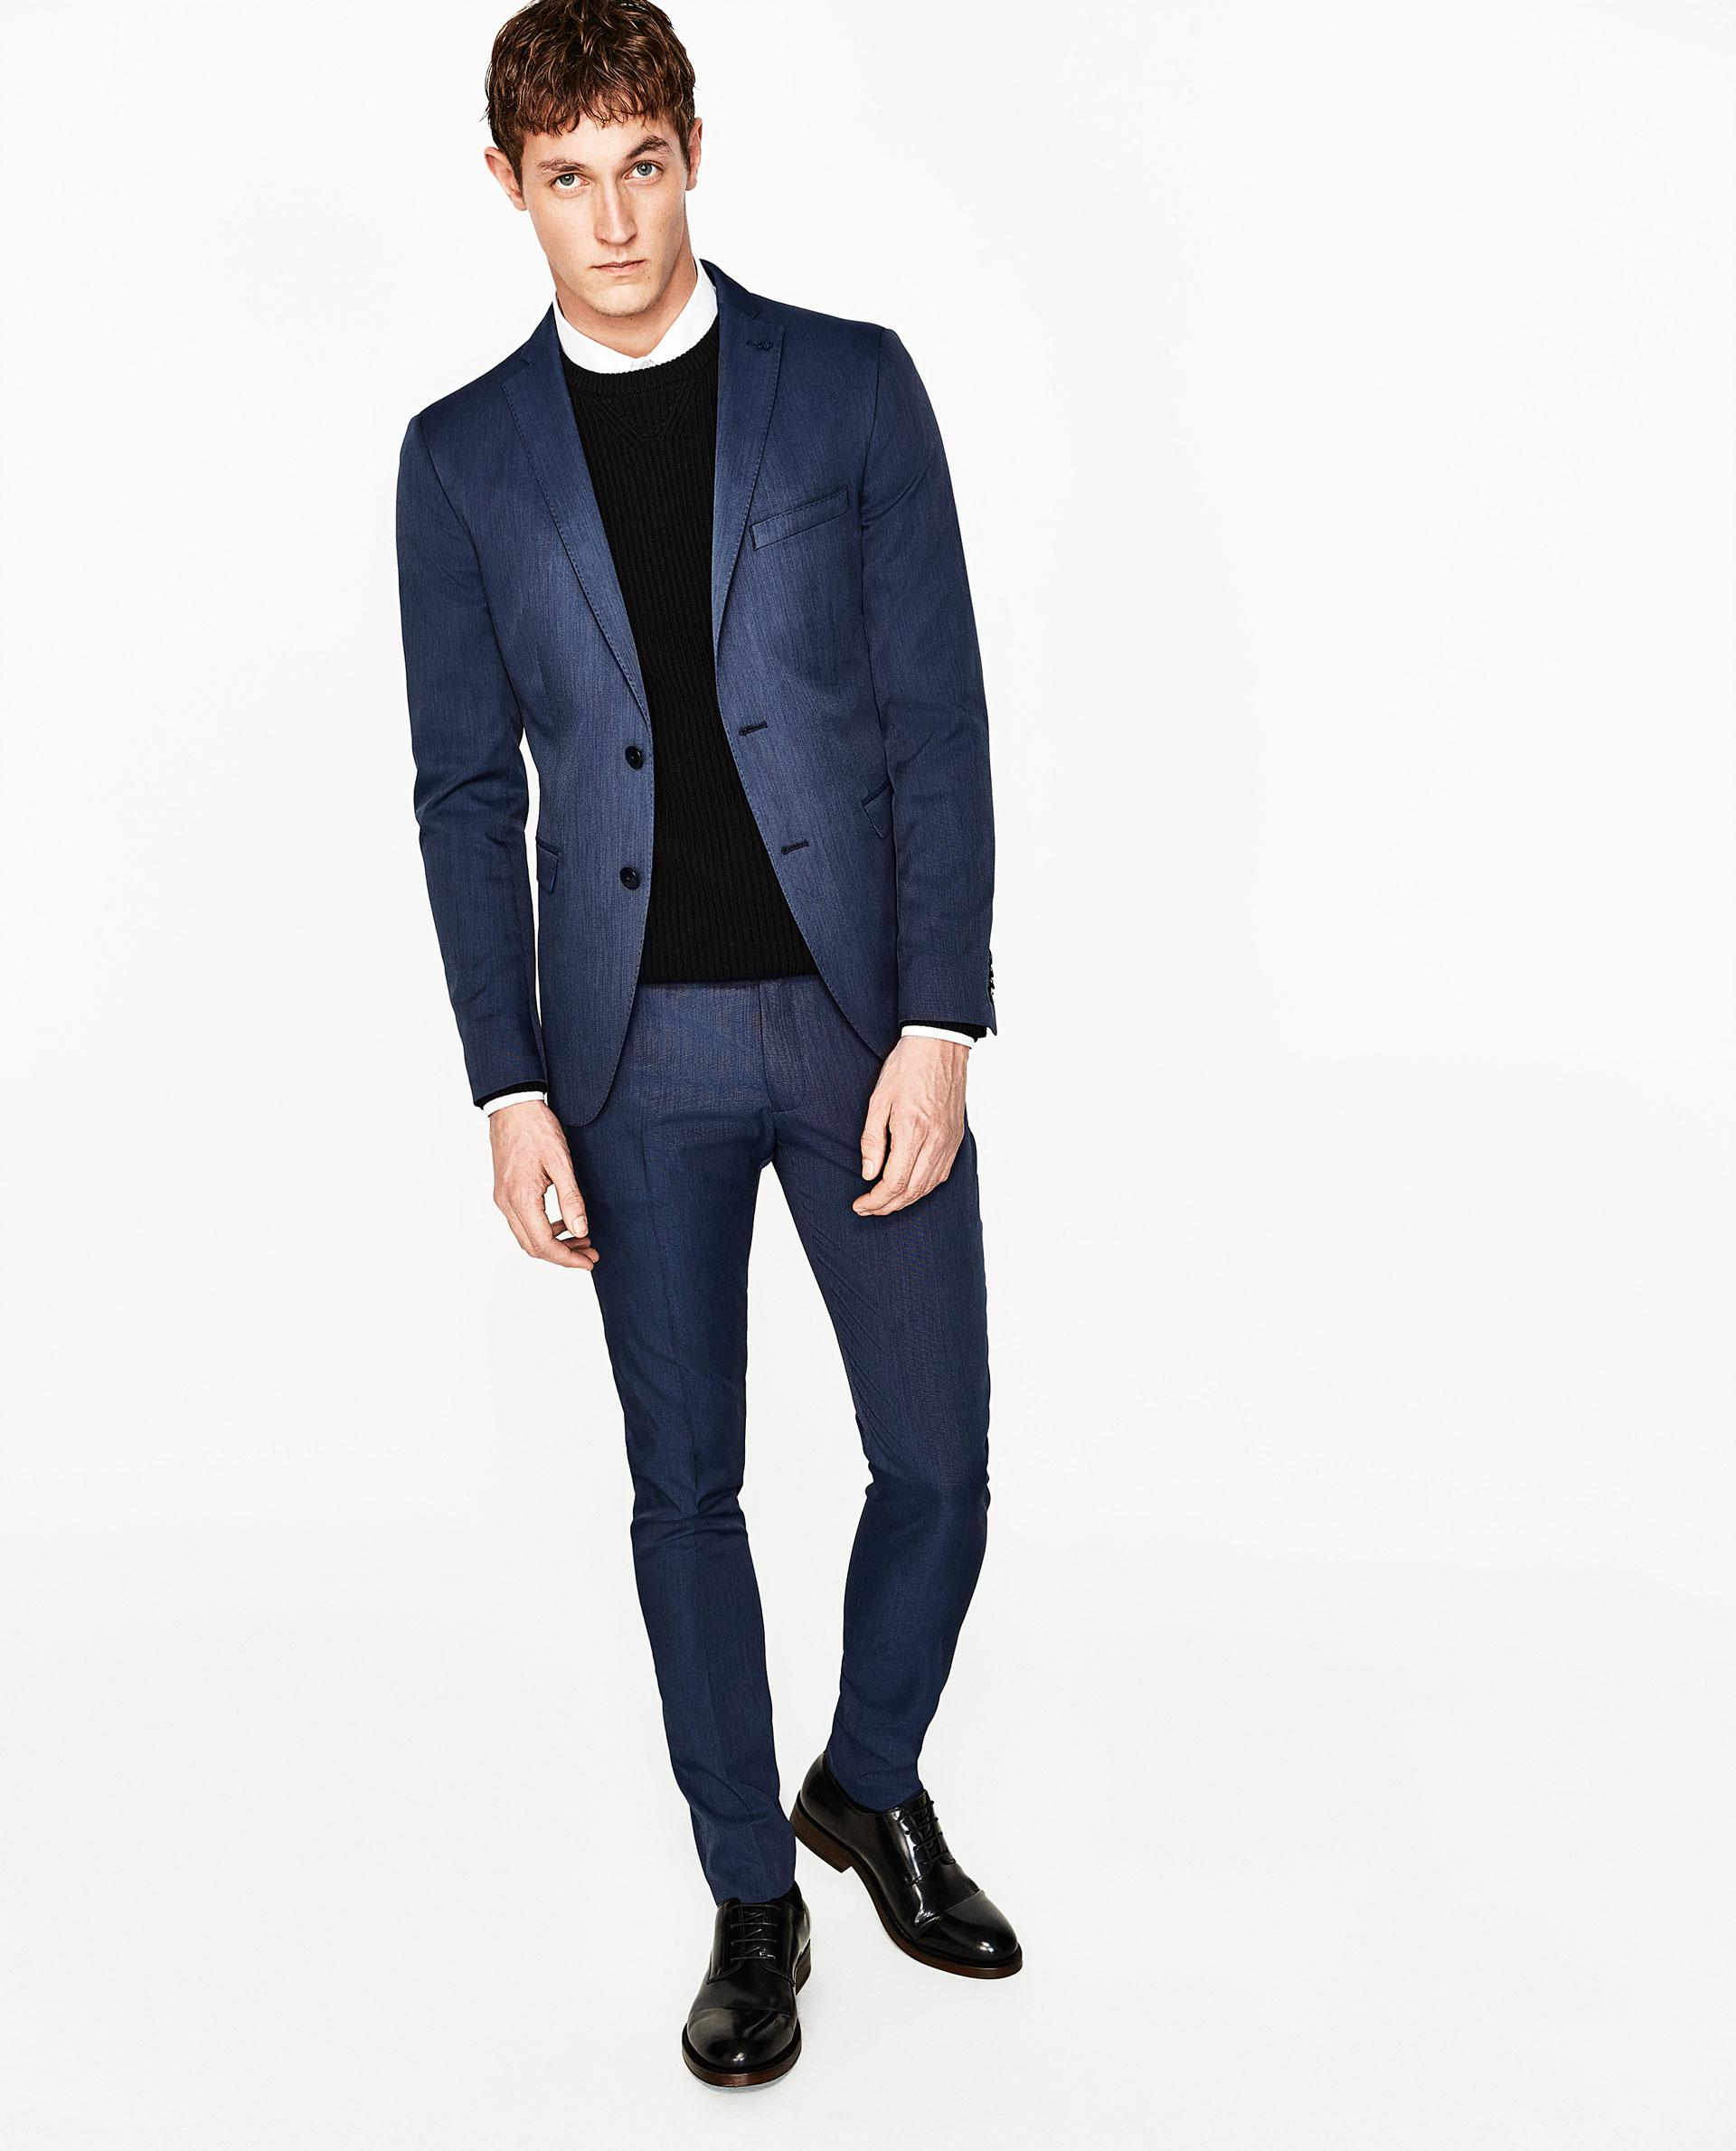 Zara Coolmax Suit Trousers In Blue For Men | Lyst